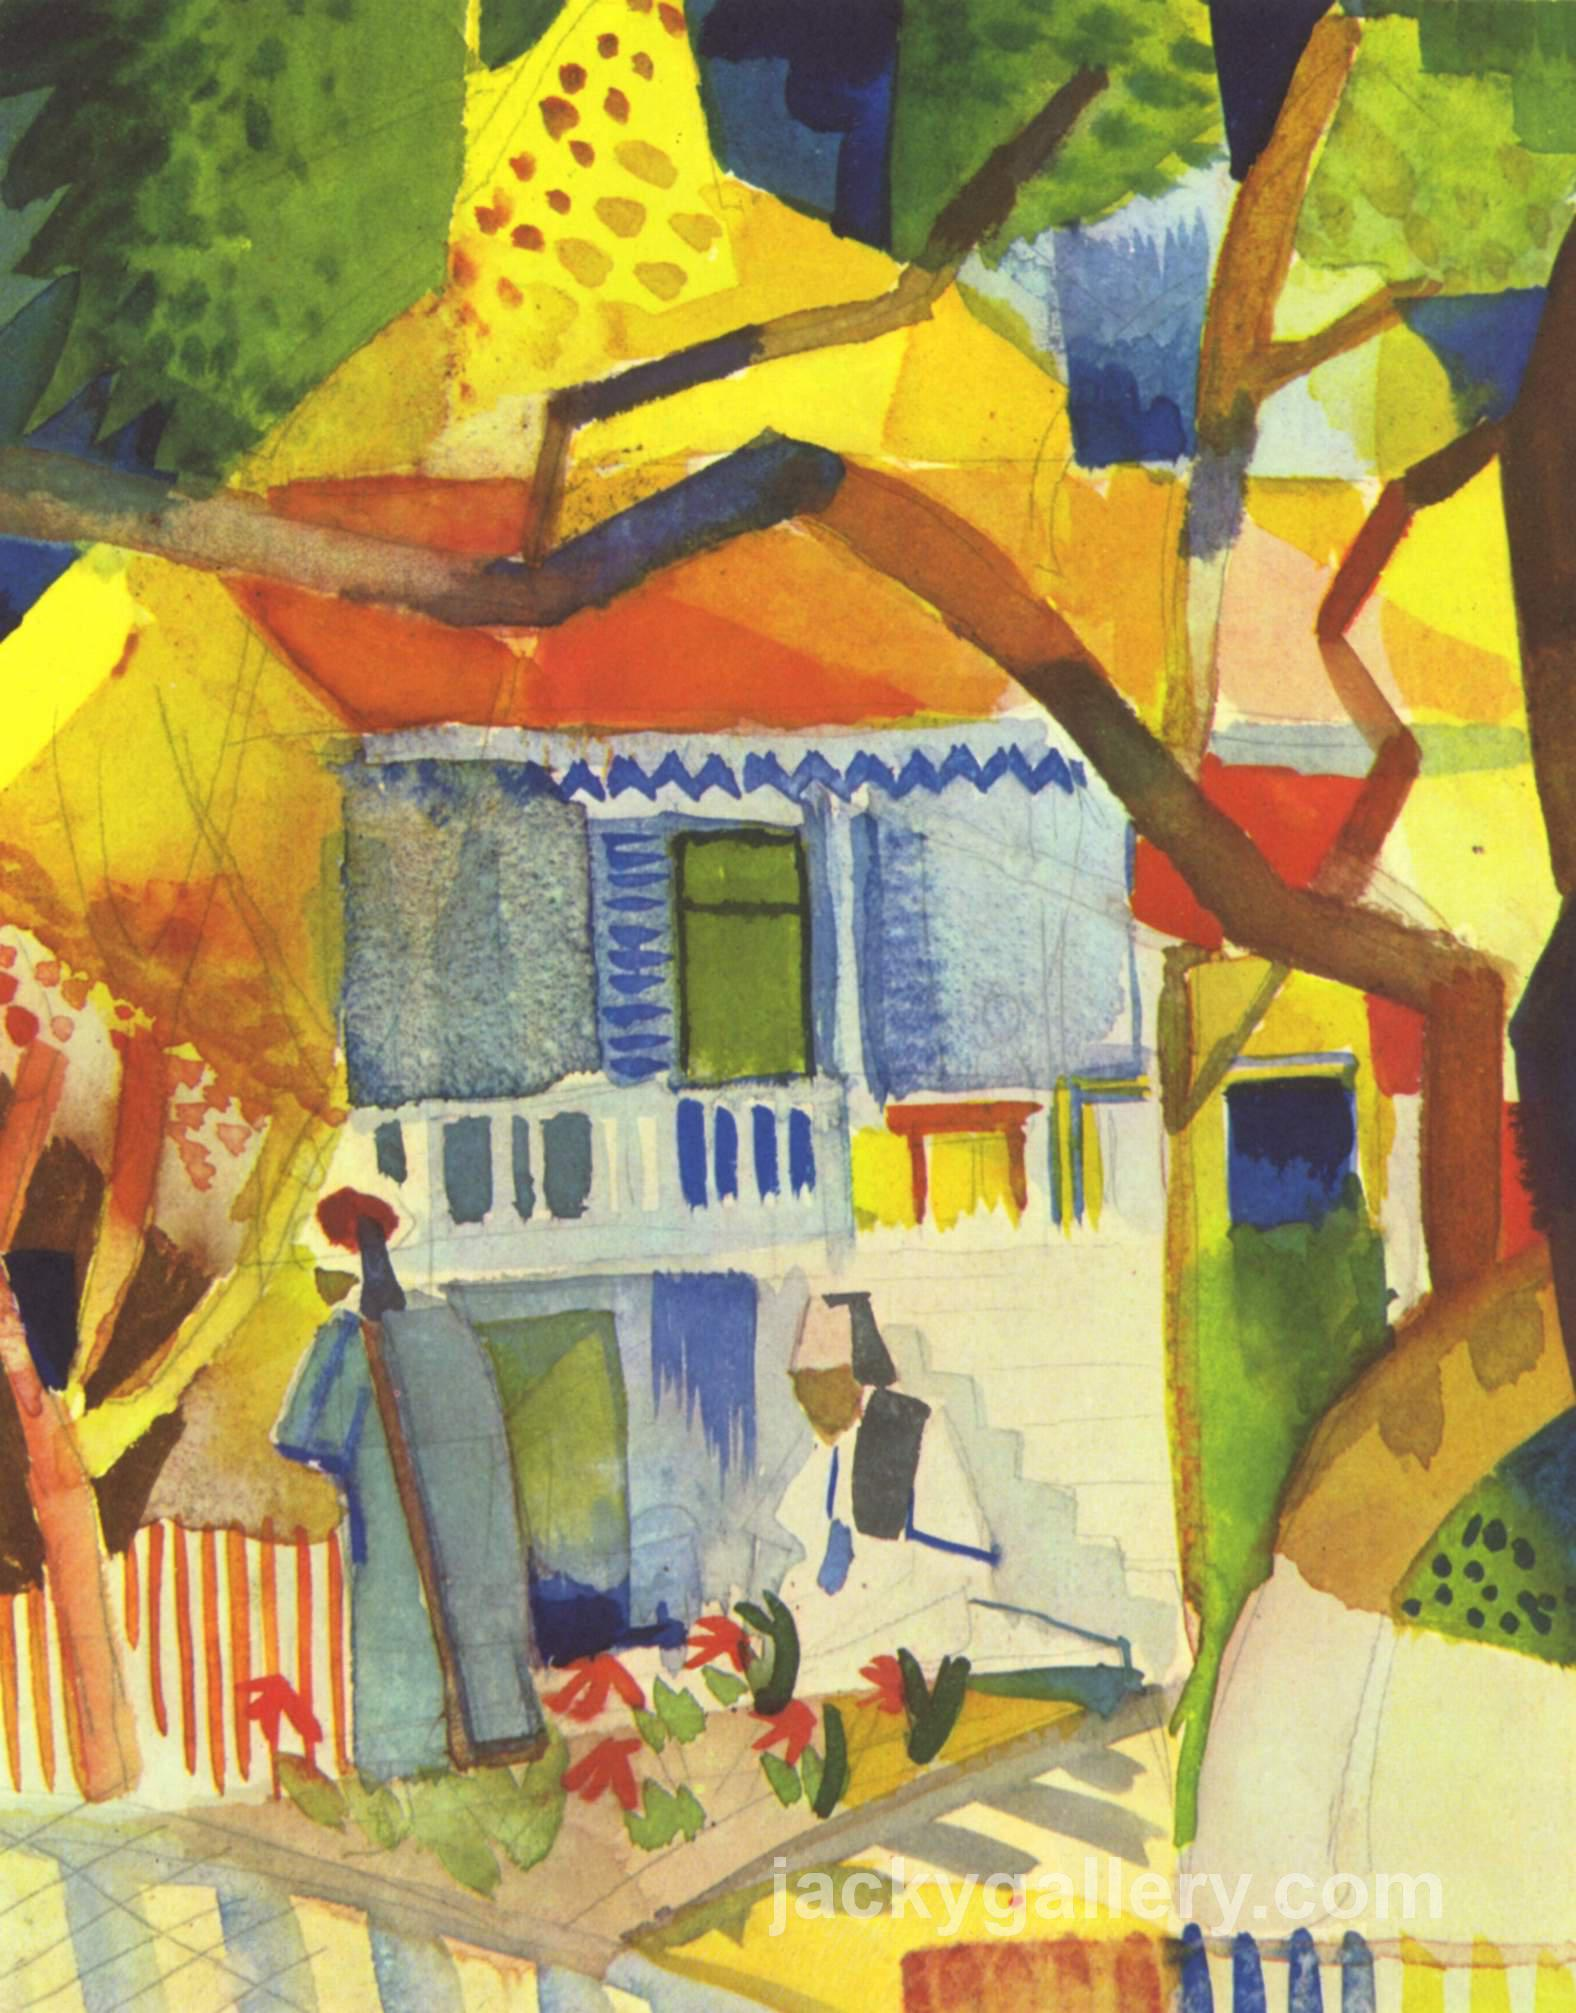 Inner courtyard of house in St. Germain, August Macke painting